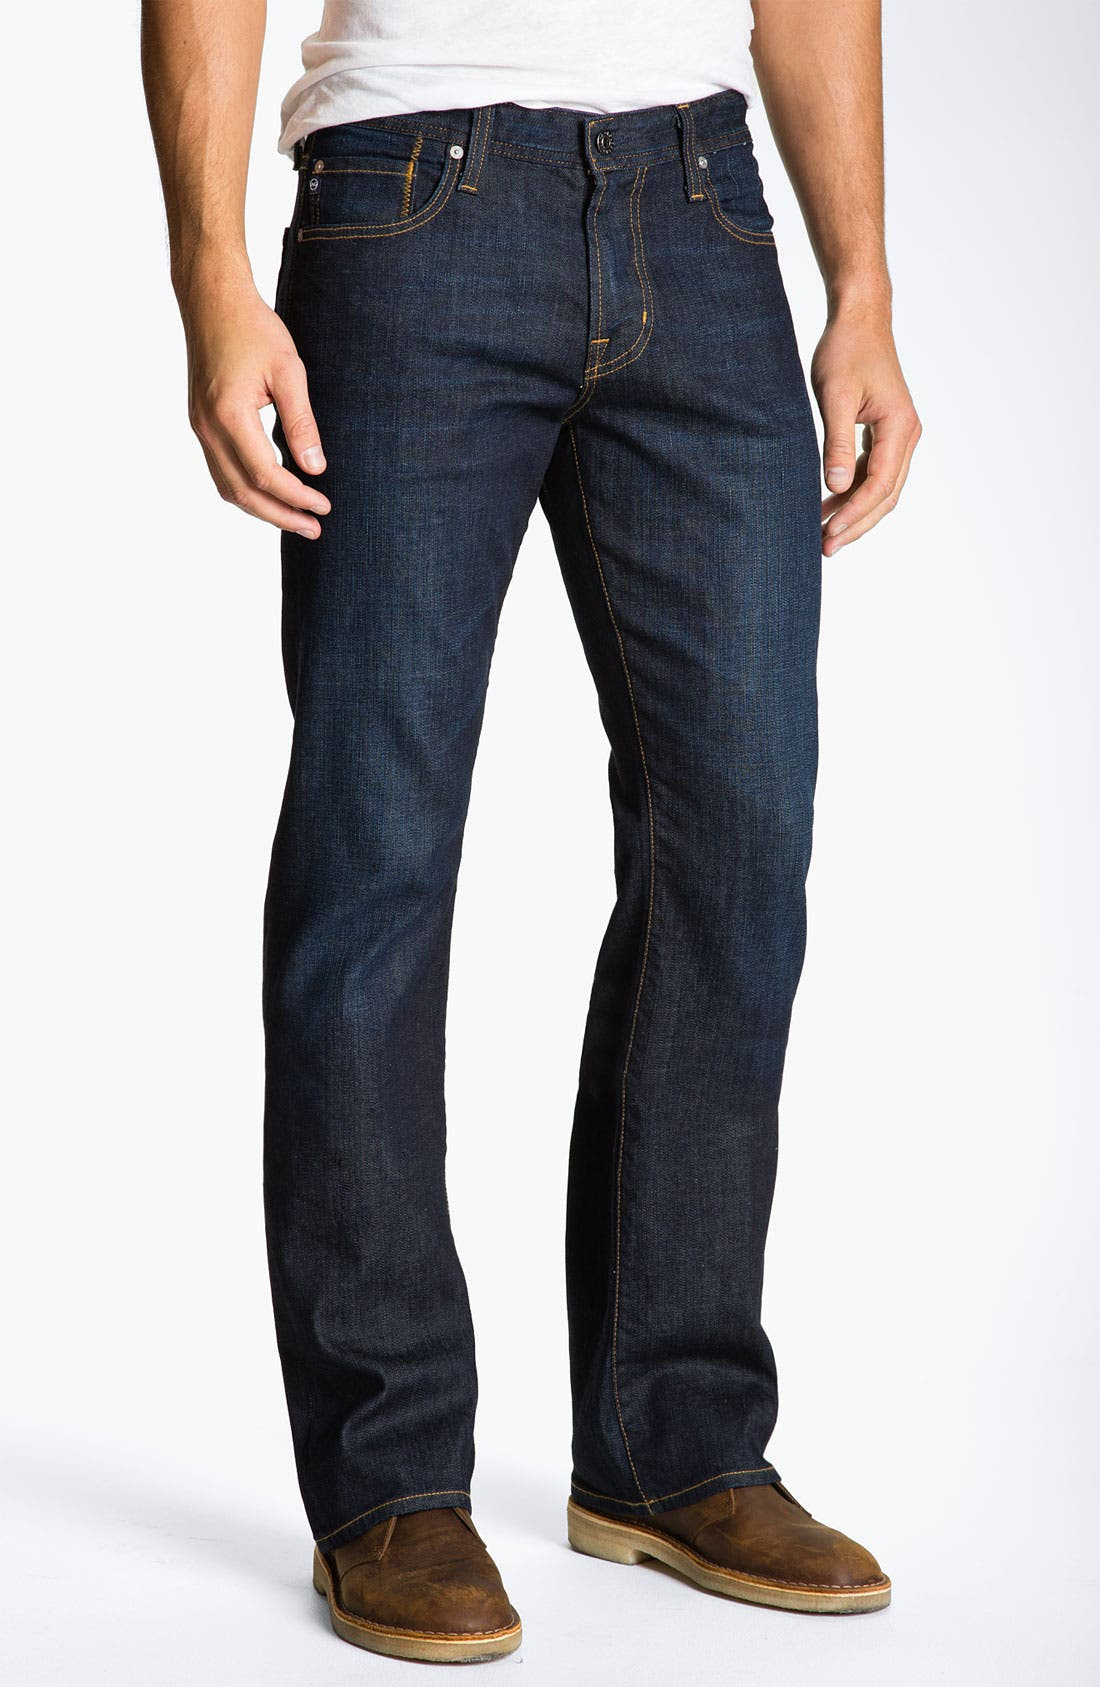 Alternate Image 1 Selected - AG Jeans 'Regent' Bootcut Jeans (Anderson)